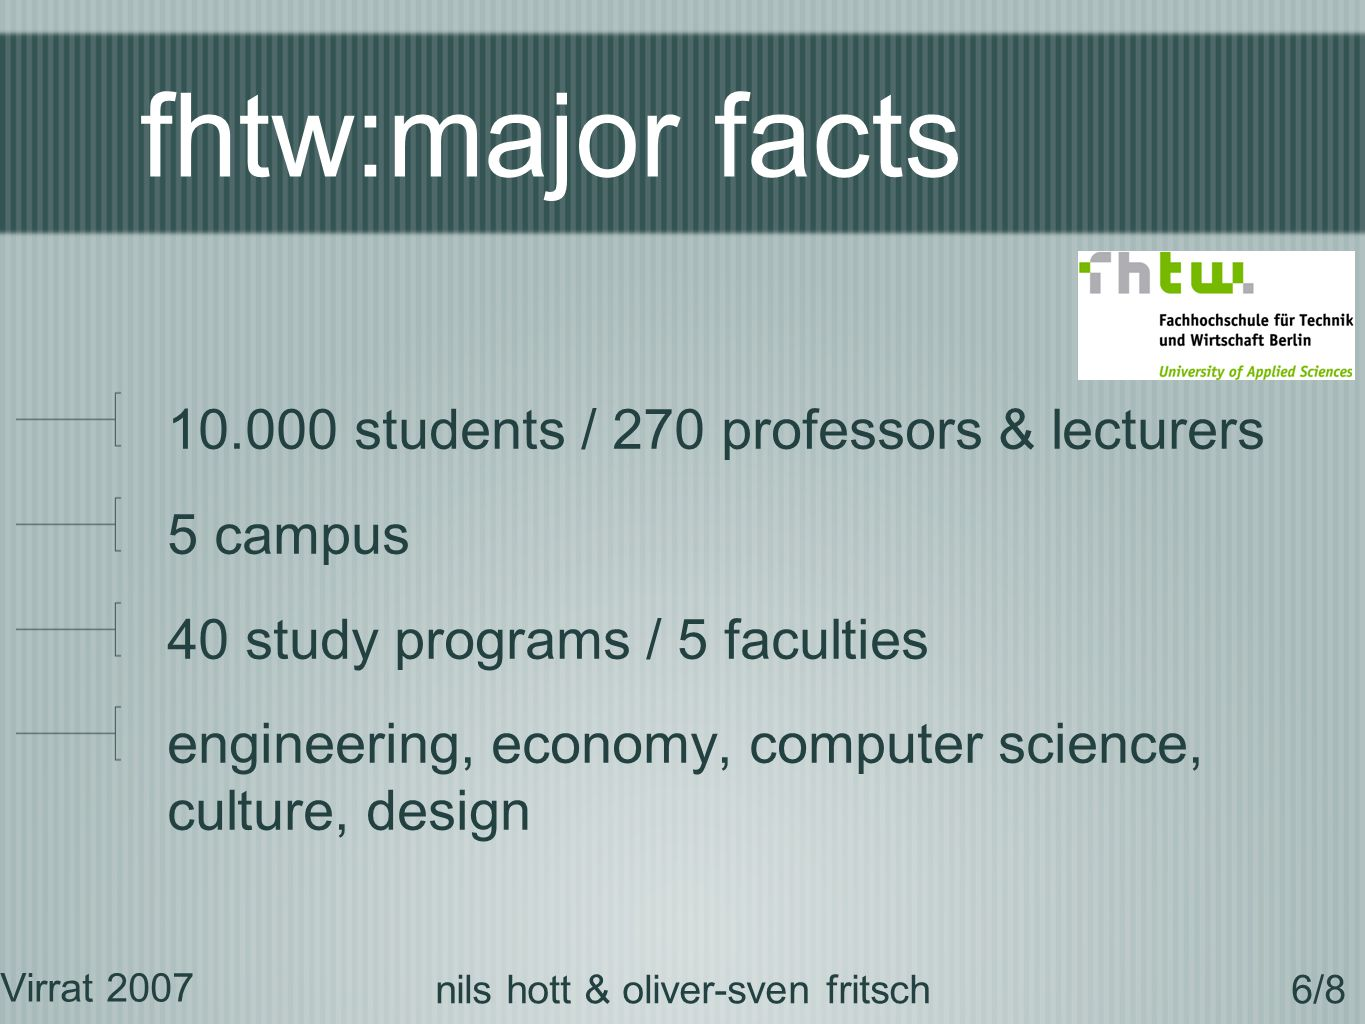 fhtw:major facts 10.000 students / 270 professors & lecturers 5 campus 40 study programs / 5 faculties engineering, economy, computer science, culture, design Virrat 2007 6/8nils hott & oliver-sven fritsch